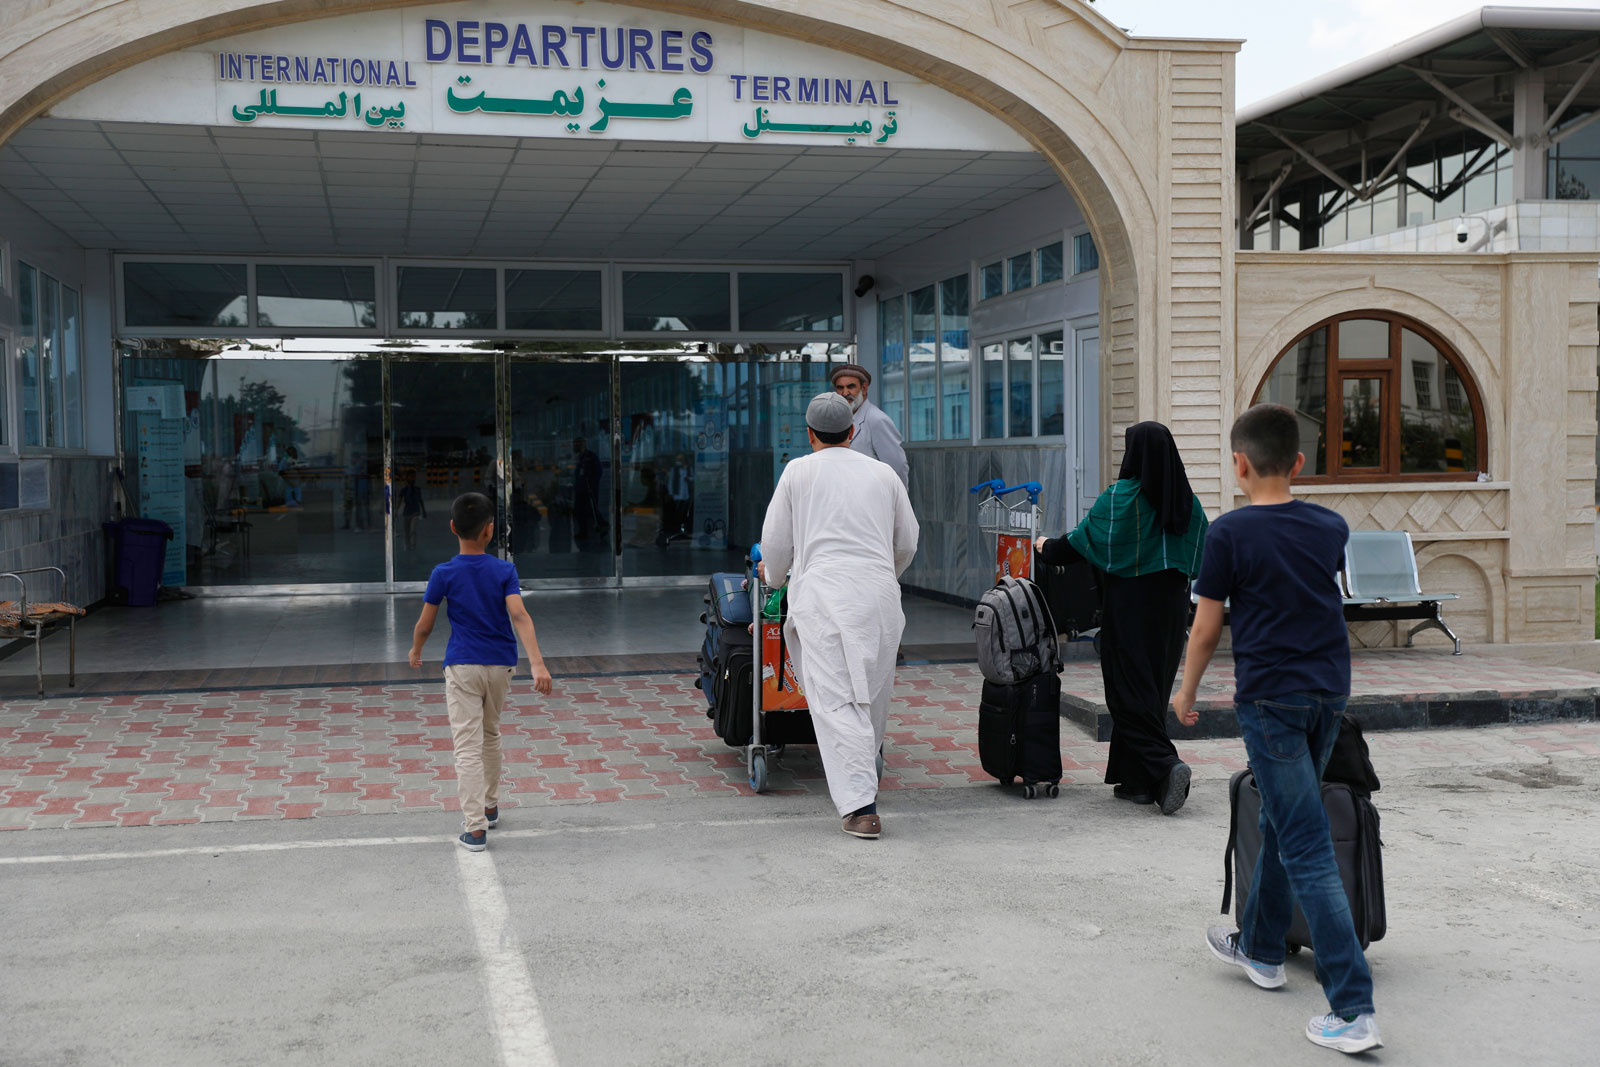 Passengers enter the departures terminal of Hamid Karzai International Airport, in Kabul, Afghanistan, on August 14.